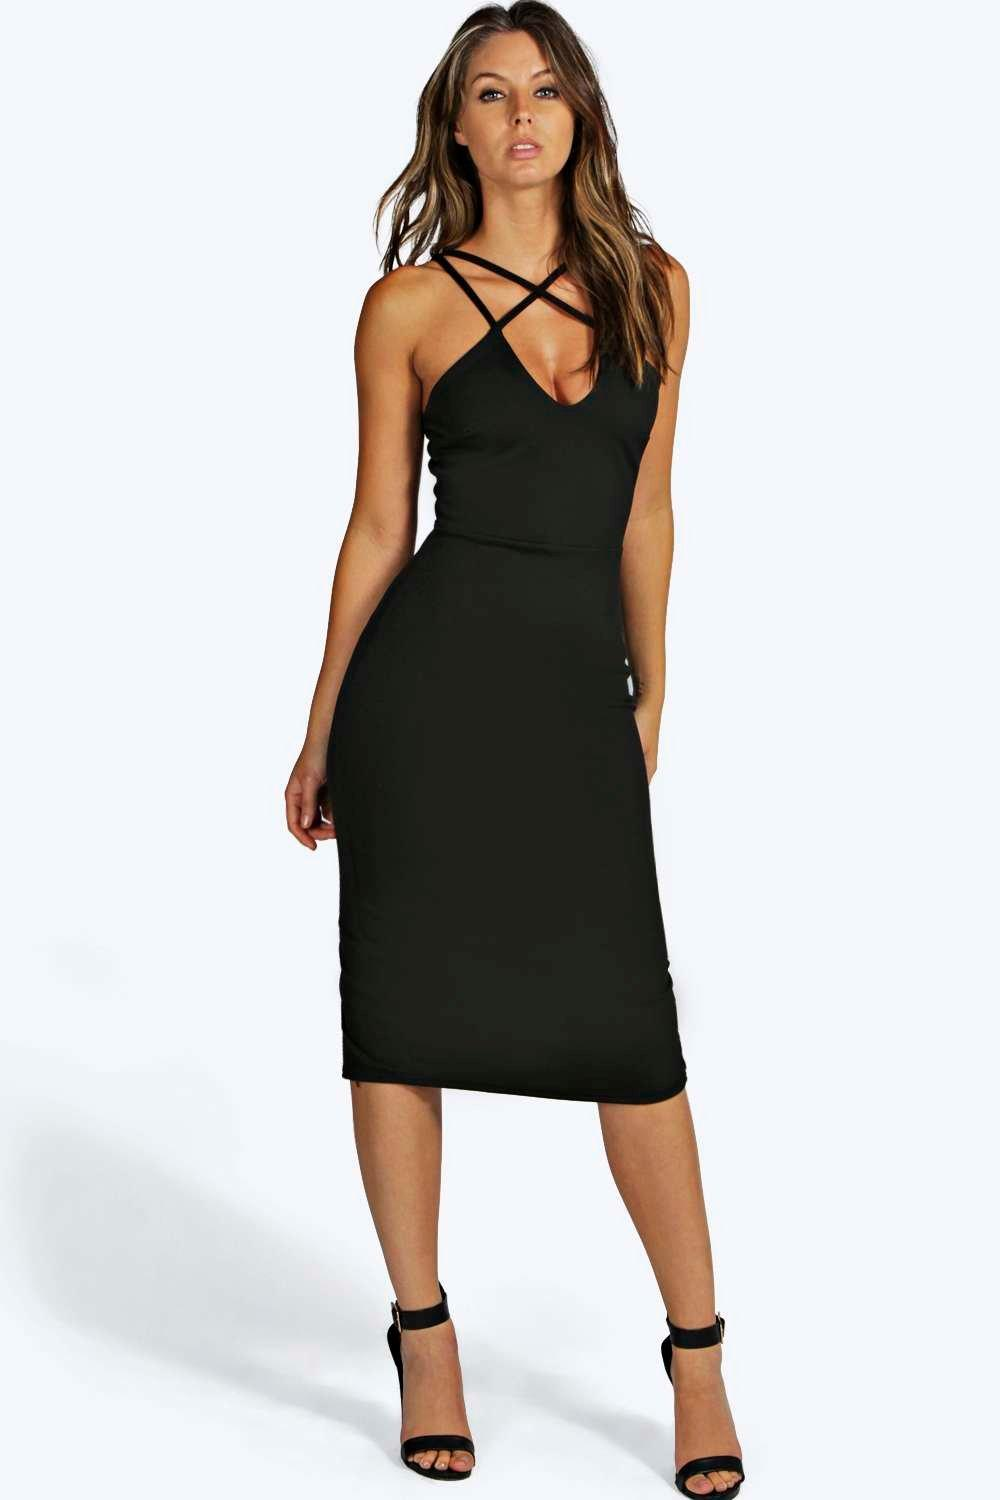 Compare 14 West Midi Dresses for Women and find the best price. Buy midi dresses online at the best webshops. / collection online now!